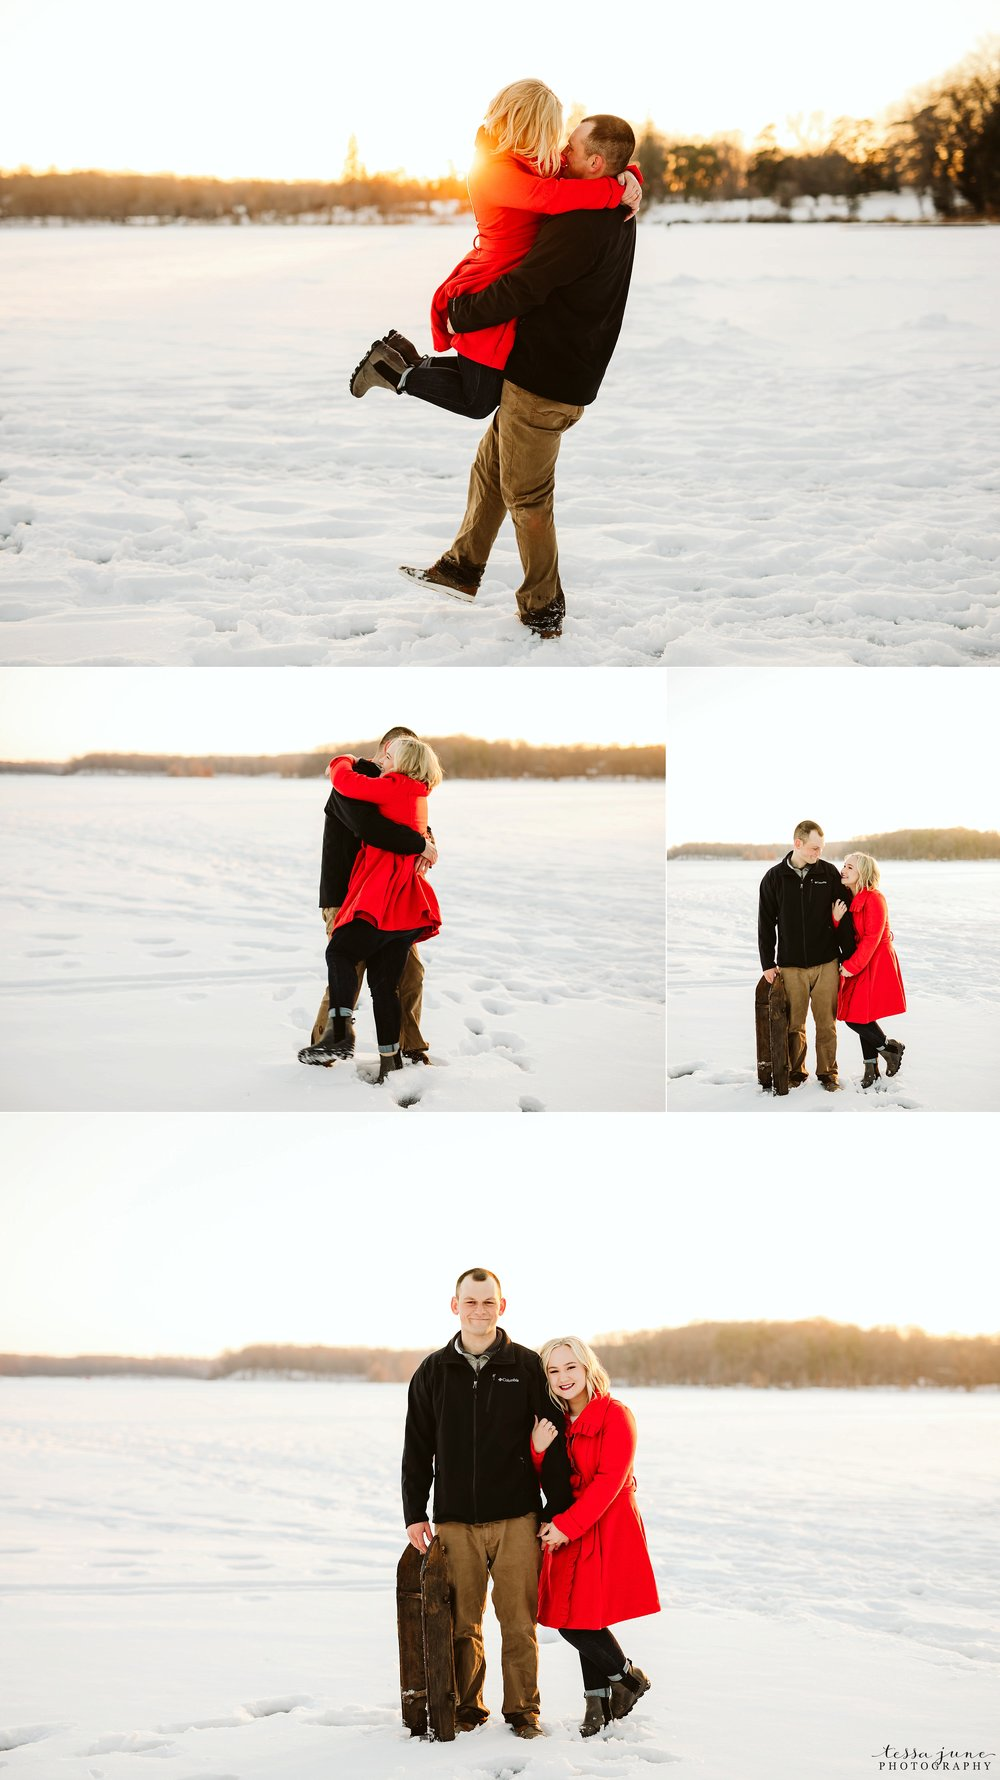 st-cloud-winter-engagement-session-at-st-johns-university-24.jpg